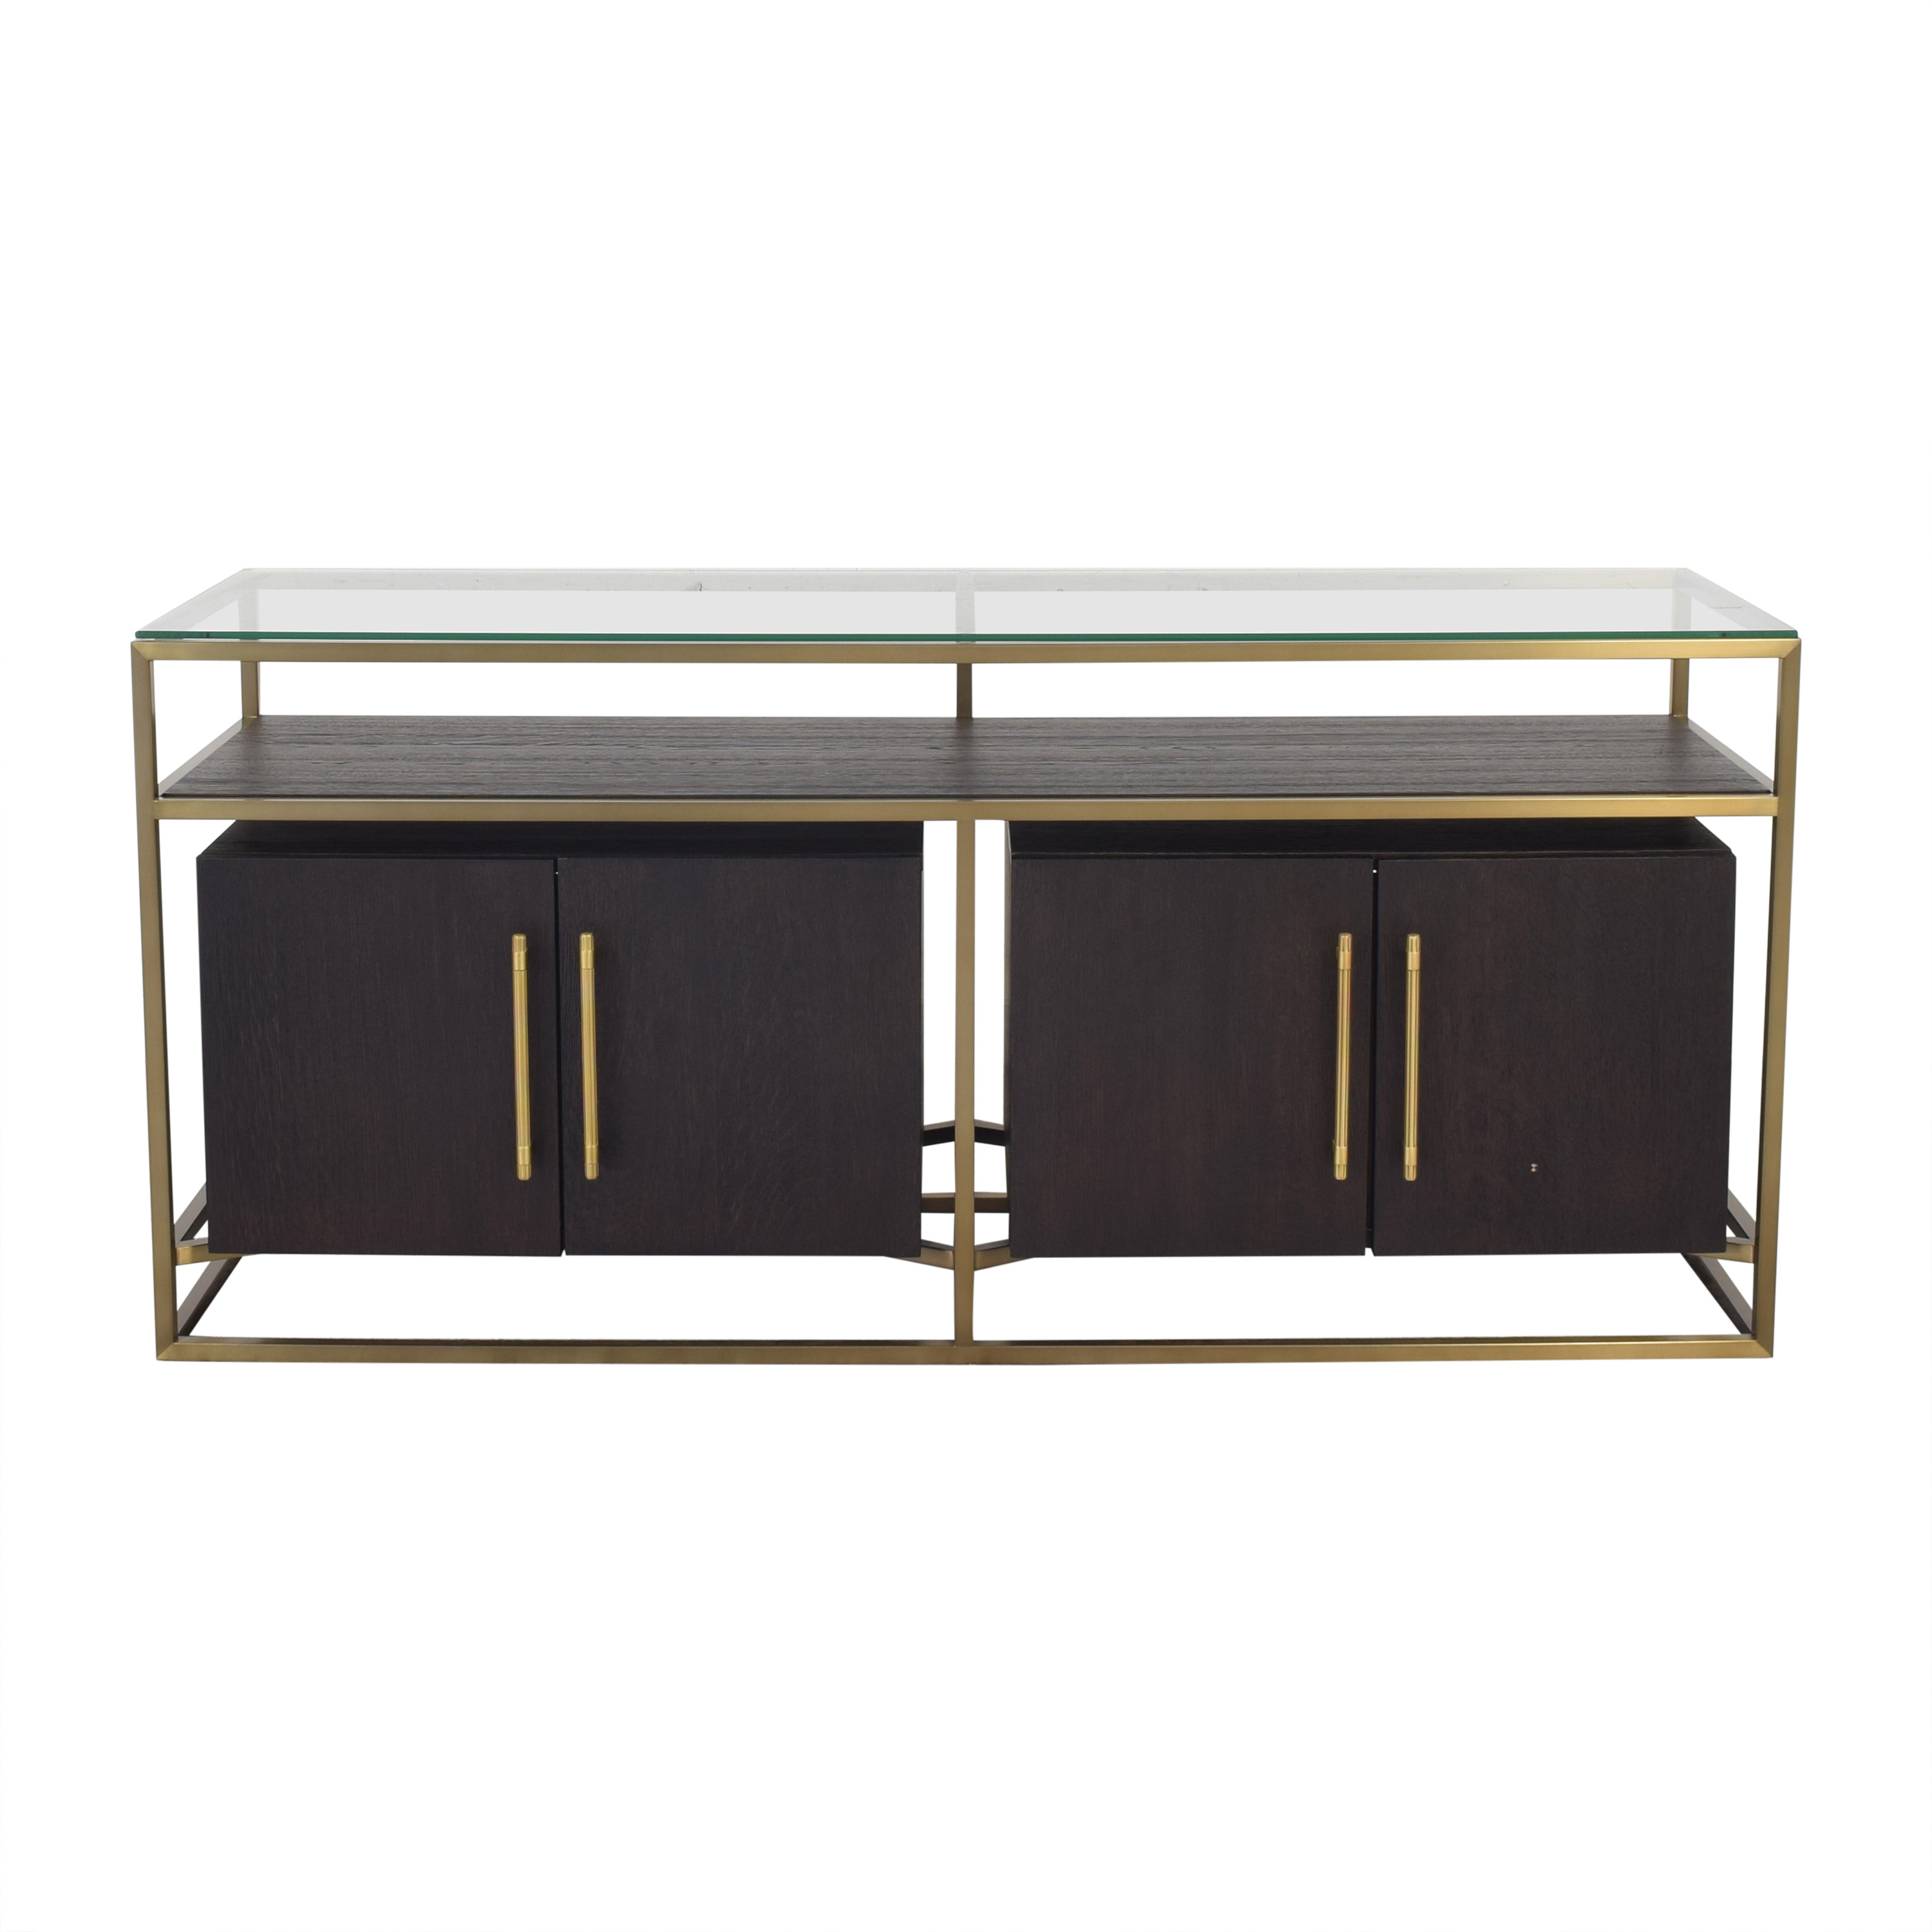 Hooker Furniture Hooker Curata Entertainment Console for sale